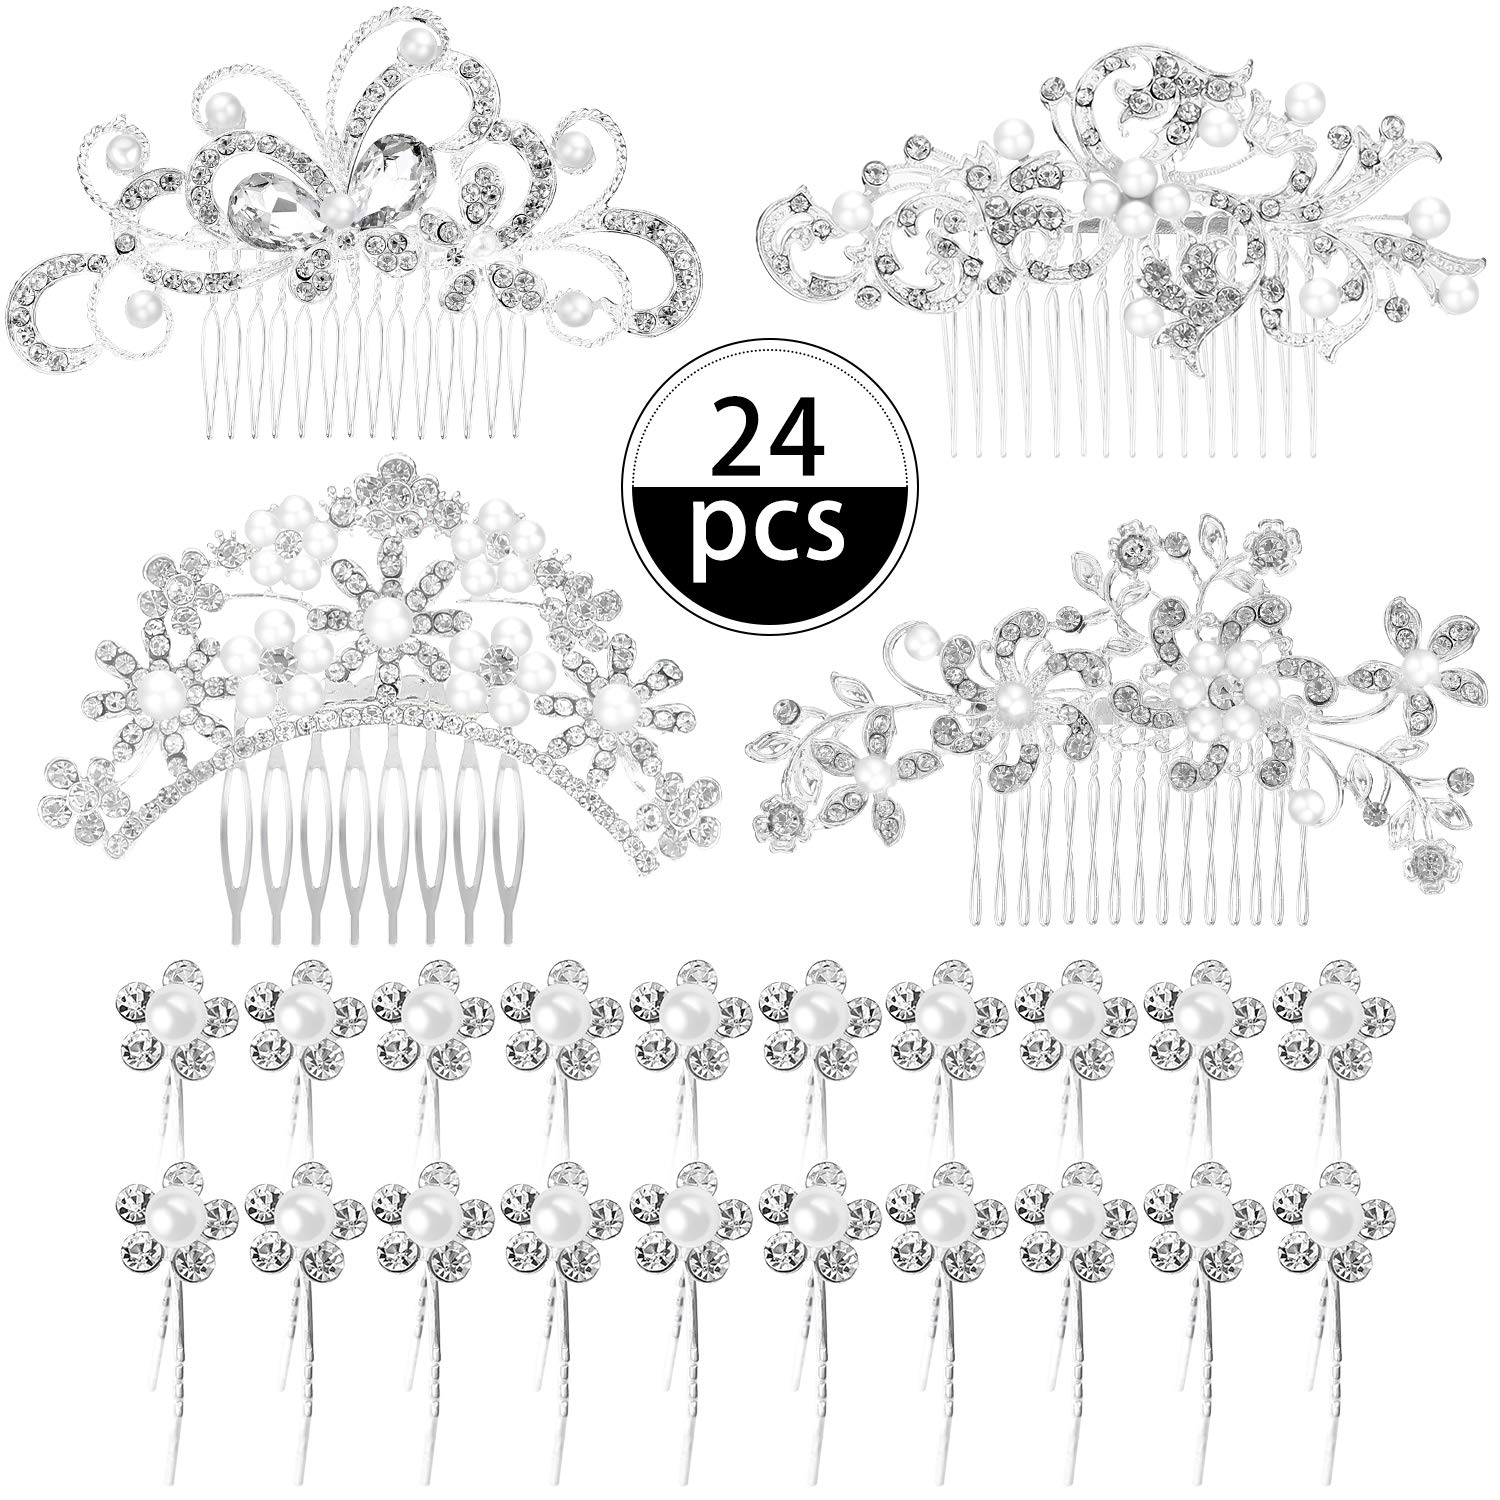 24 Pieces Wedding Bridal Hair Combs Crystal Pearl Rhinestone Hair Clips Side Hair Accessories Pearl Hair Pins for Brides and Bridesmaids (Pattern Set 1) by Boao